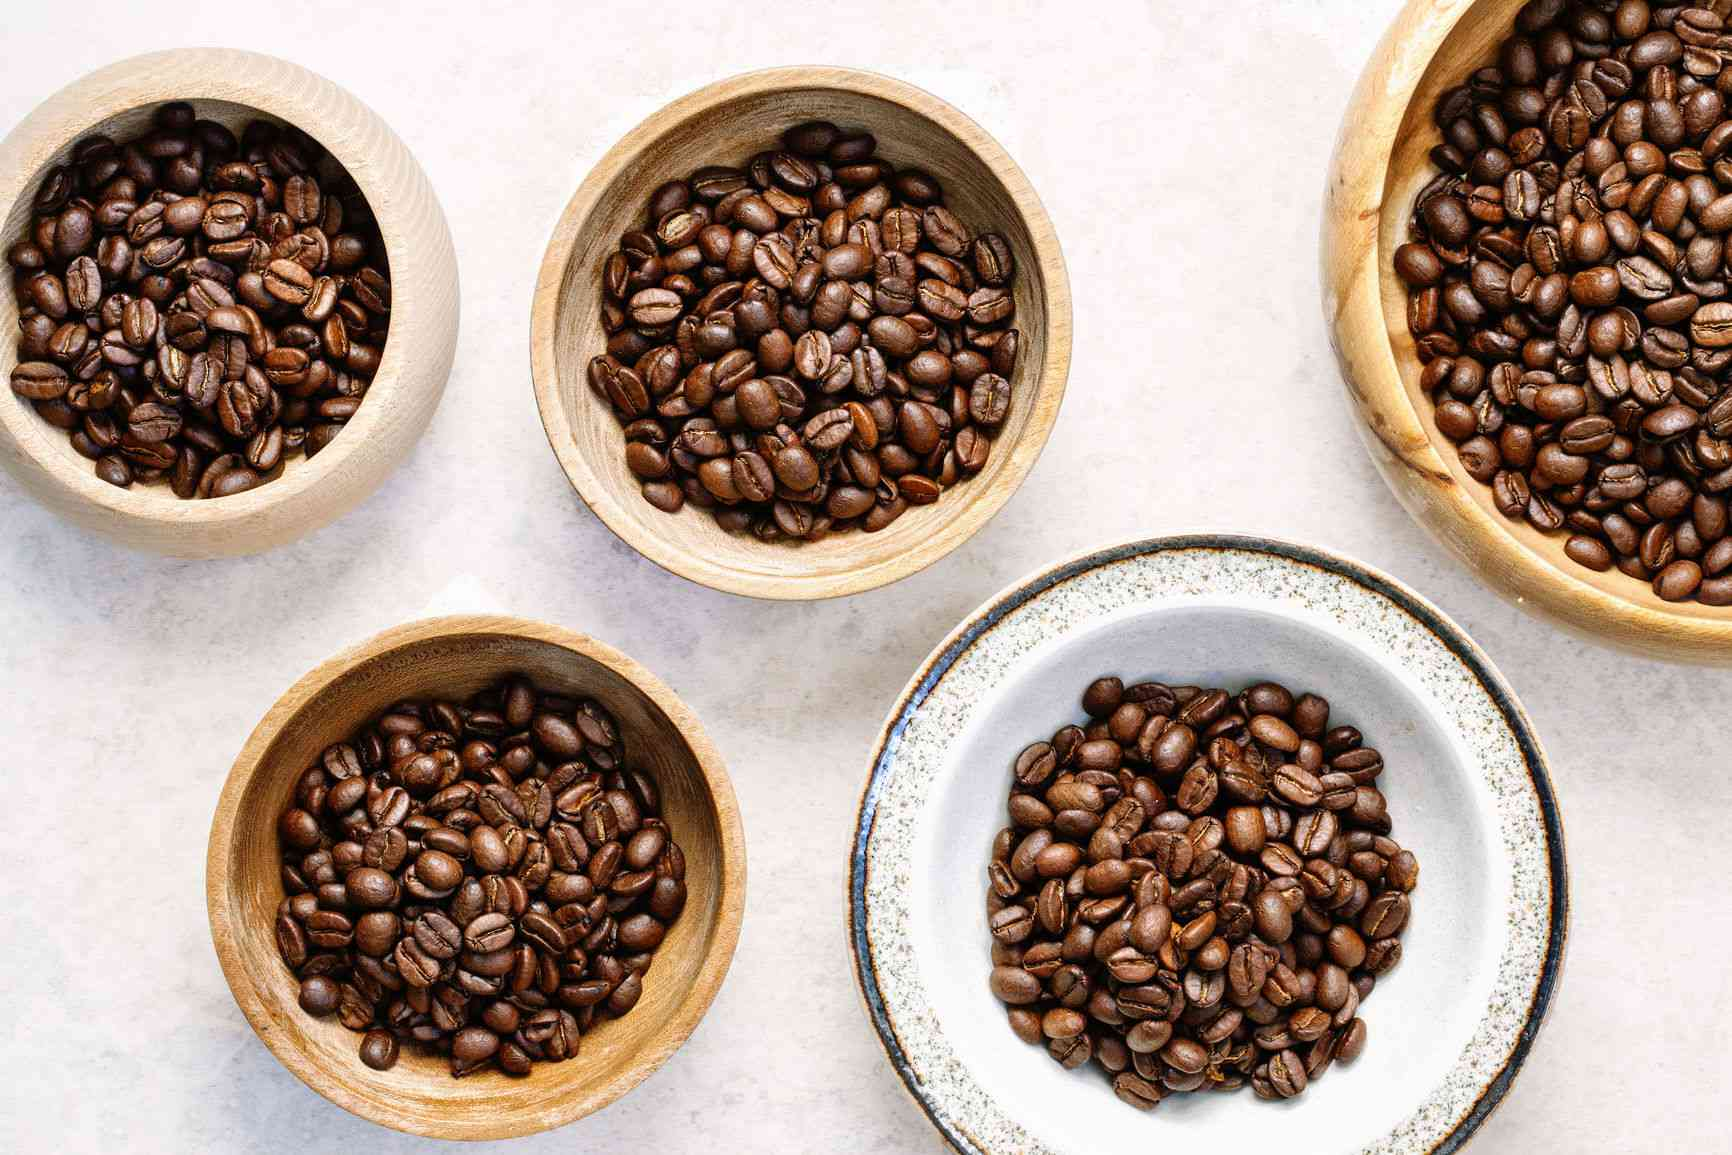 coffee beans on different plates